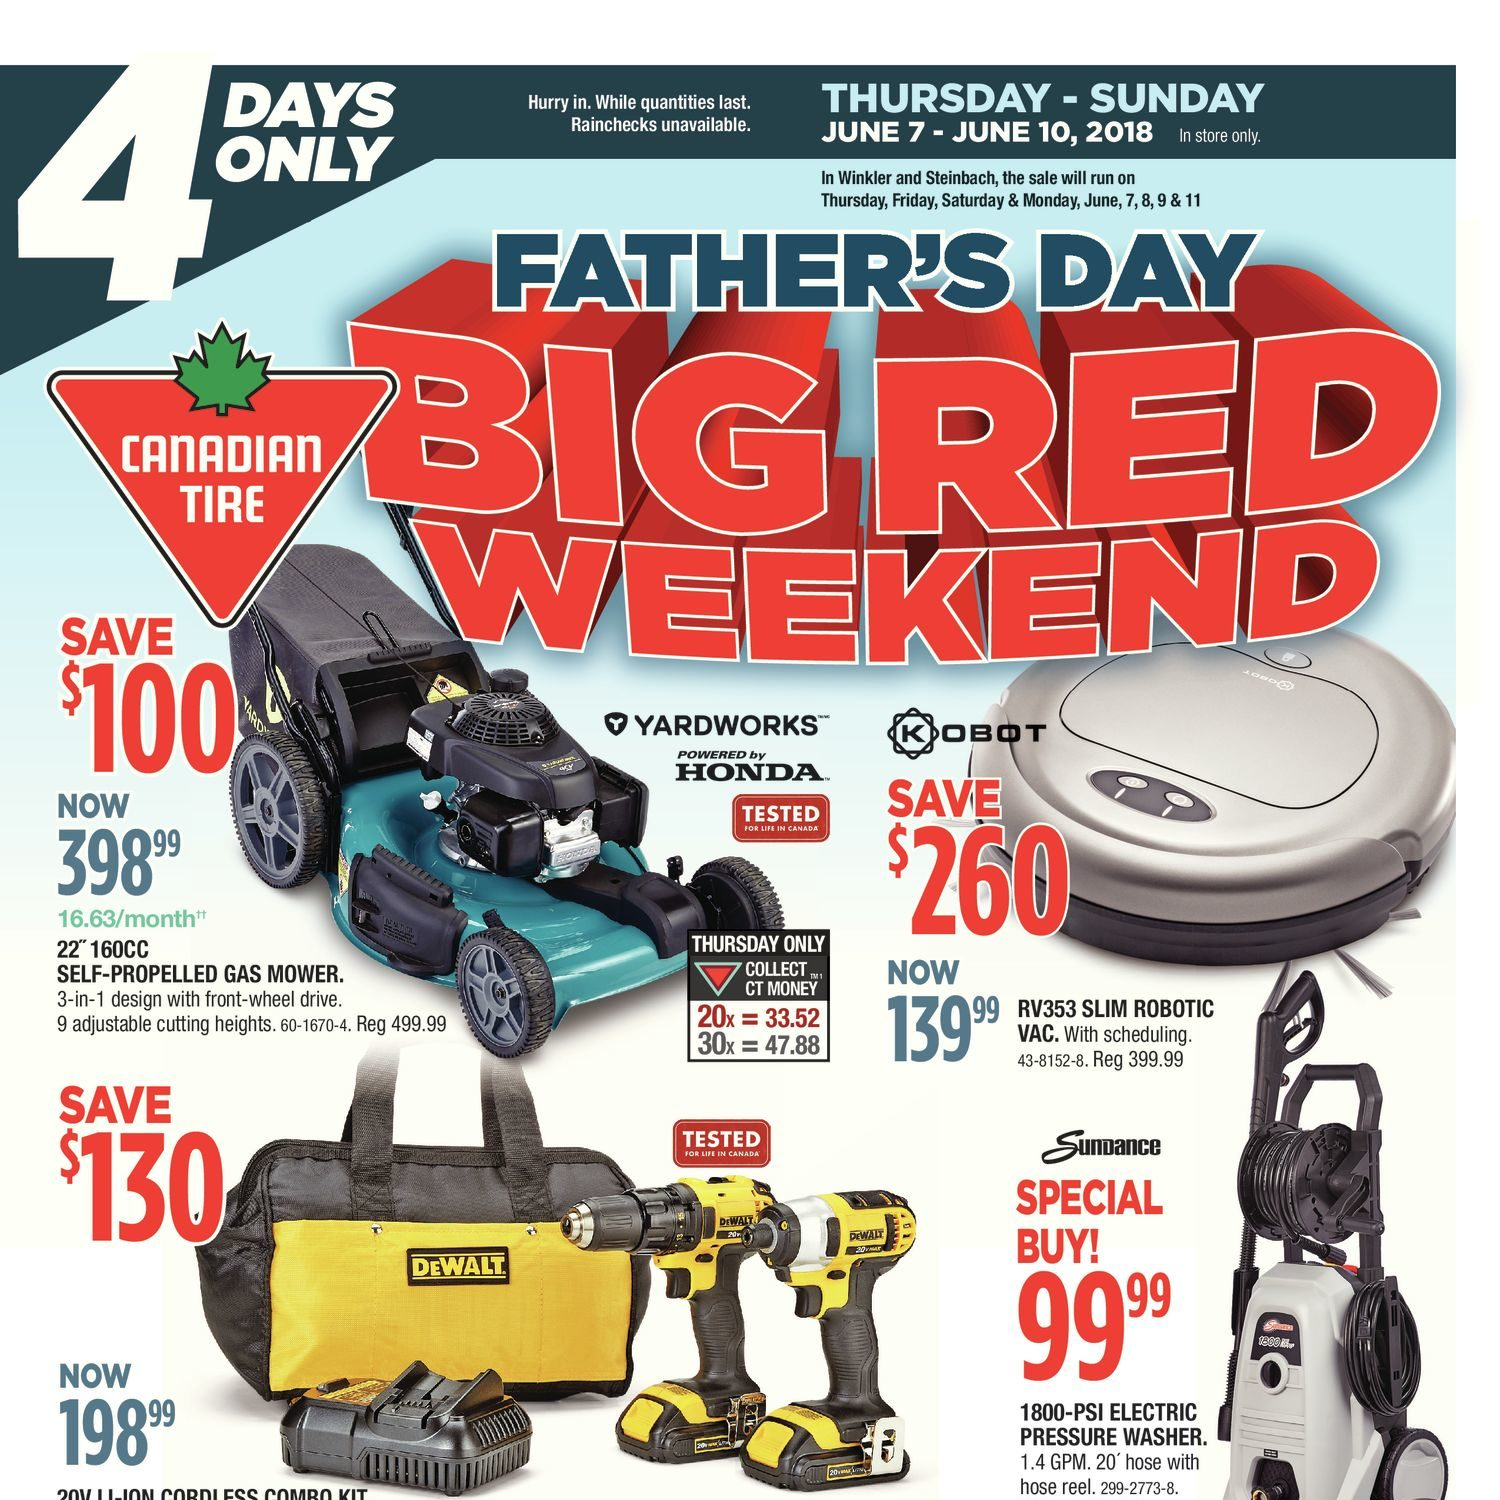 Canadian Tire Weekly Flyer Father S Day Big Red Weekend 4 Days Only Jun 7 10 Redflagdeals Com